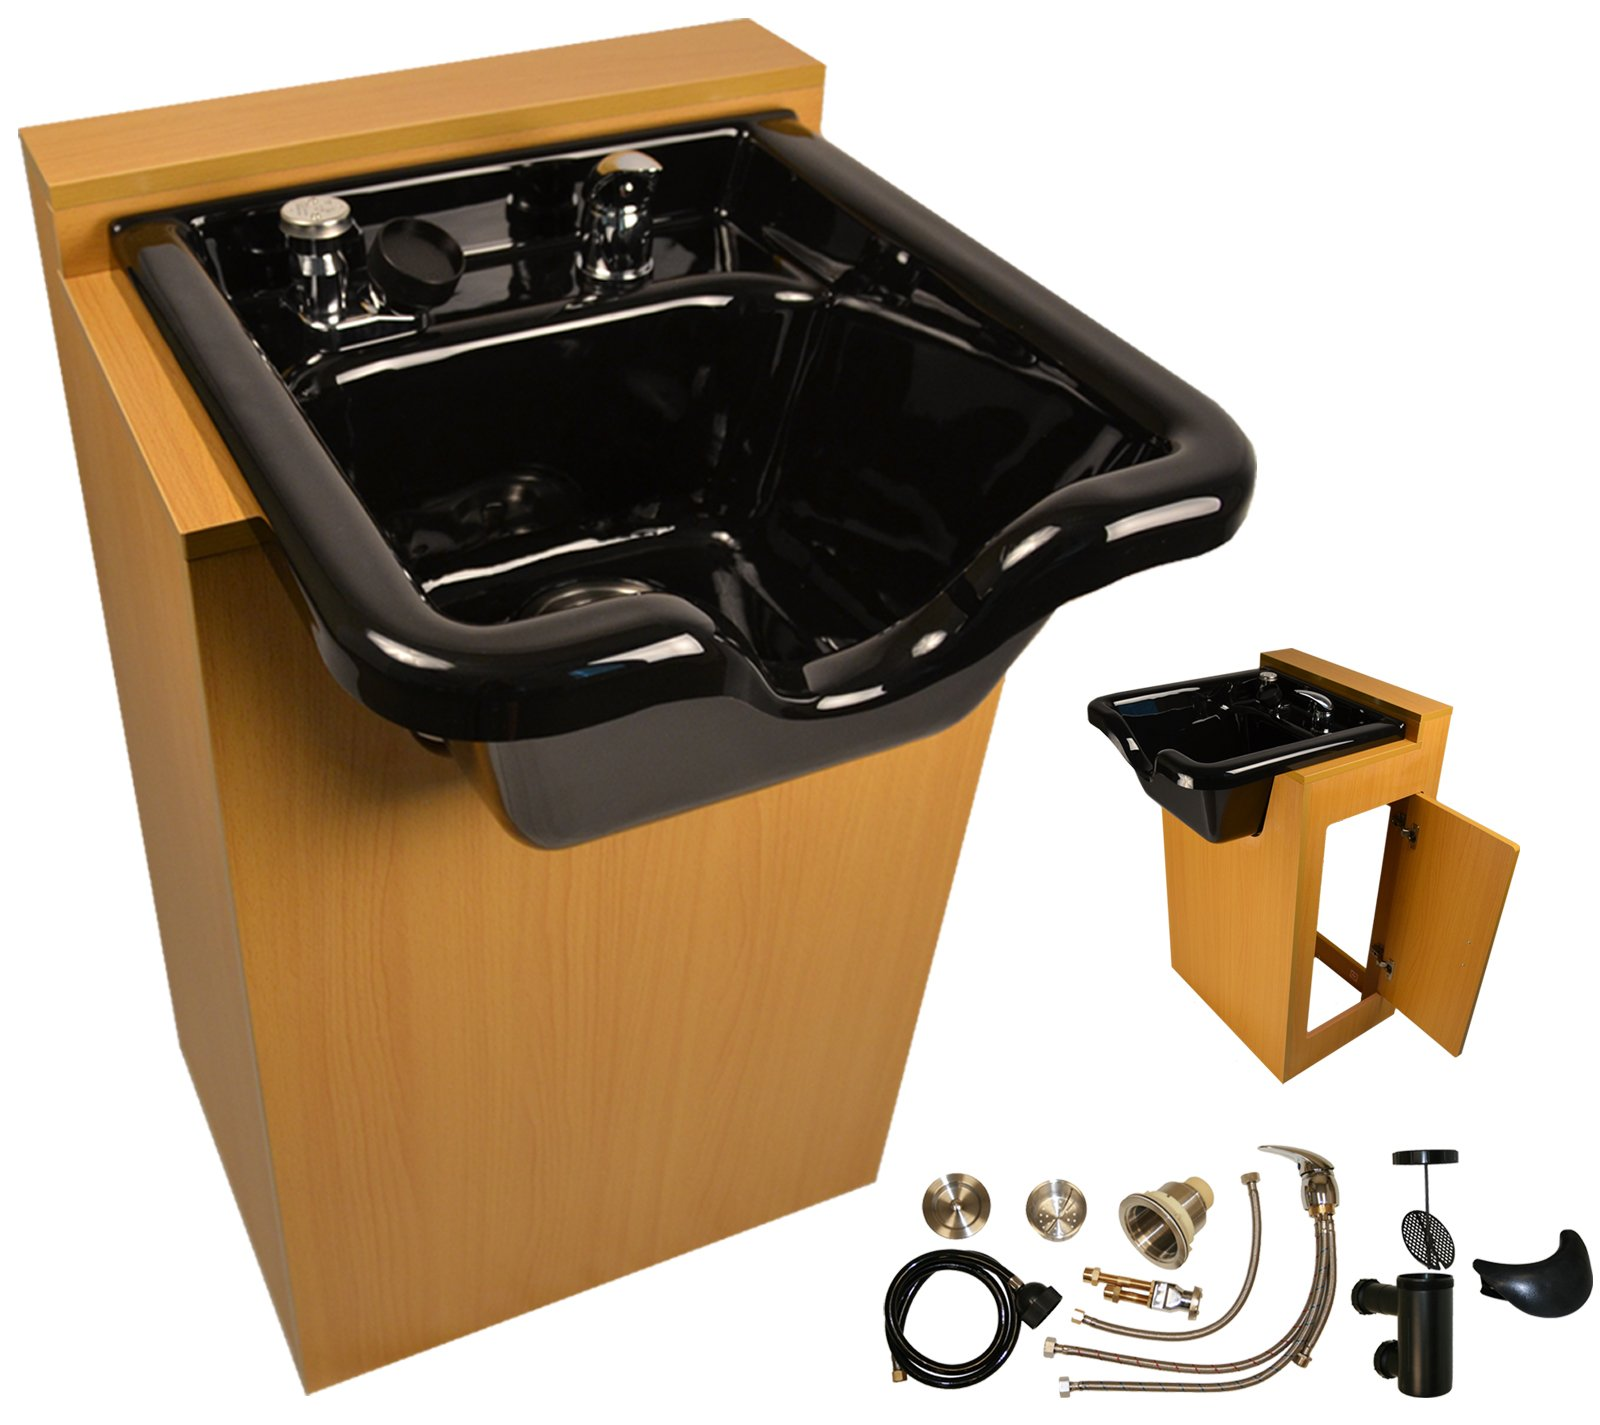 LCL Beauty Natural Oak Deluxe Shampoo Cabinet with Heavy Duty Acrylic Fiber Shampoo Bowl & Vacuum Breaker w/ 6 Black Towels